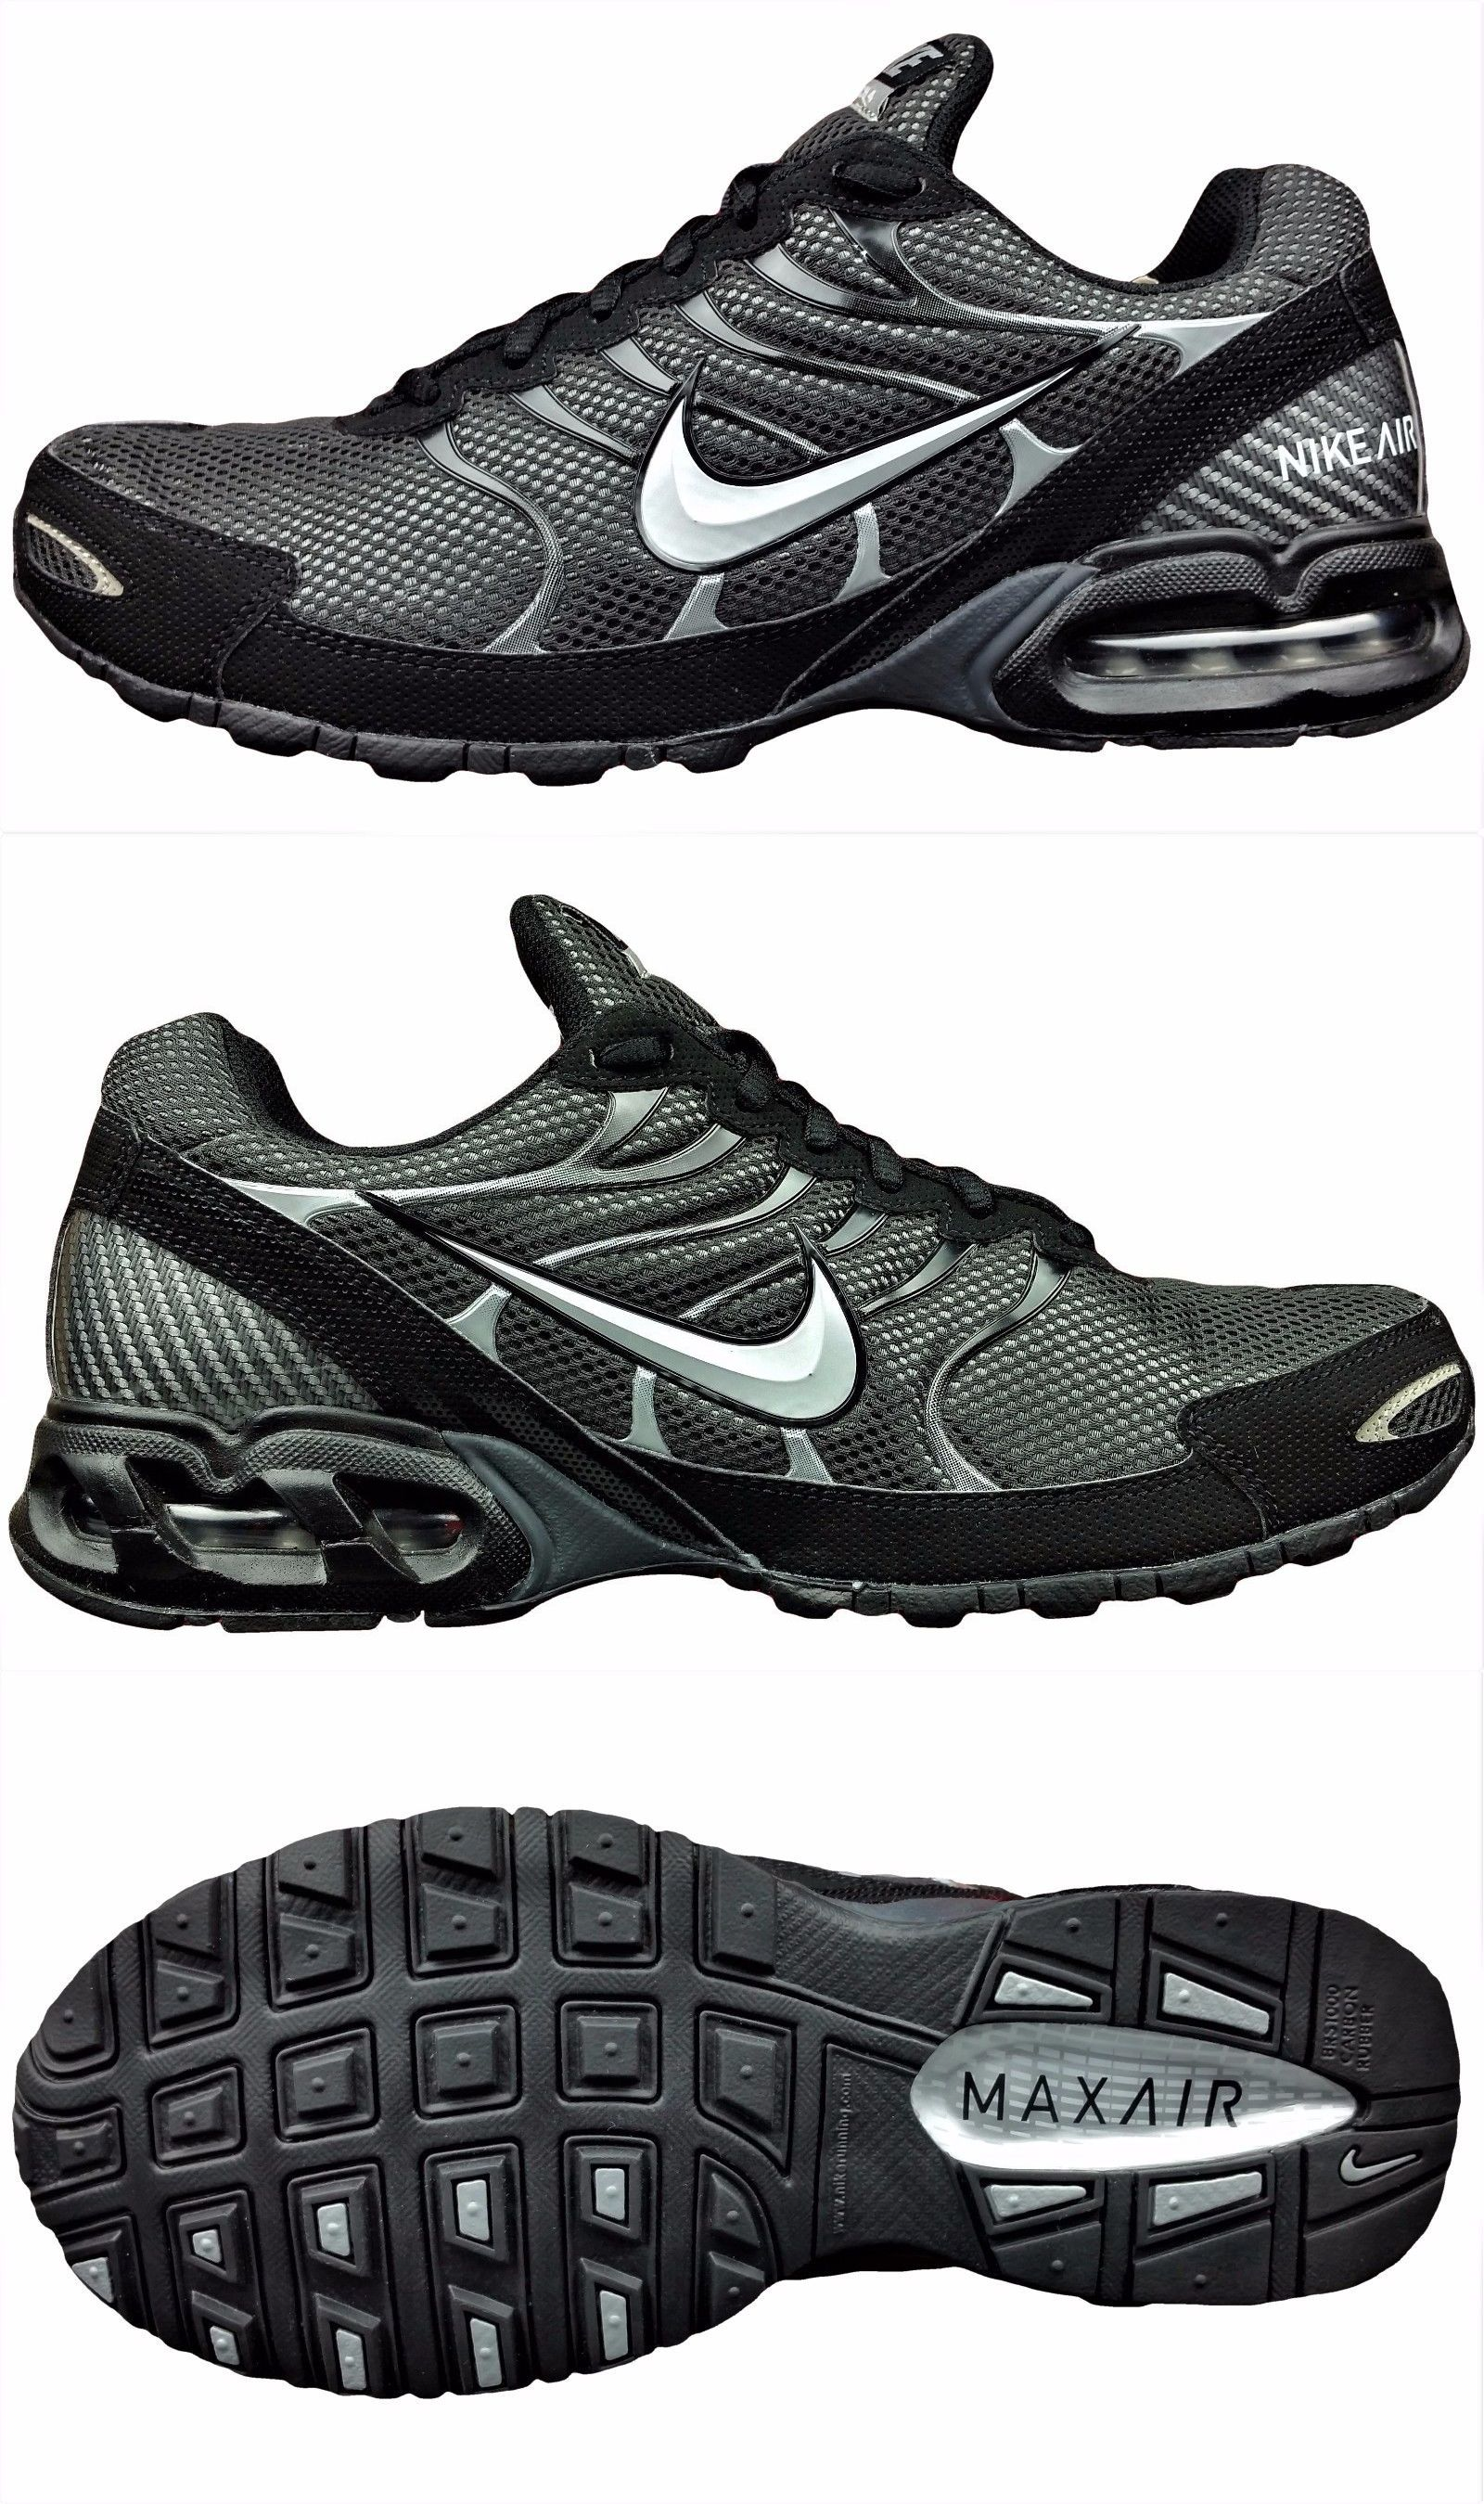 f290779491 Athletic 15709: New Nike Air Max Torch 4 Men S Running Shoes Airmax  Sneakers Black